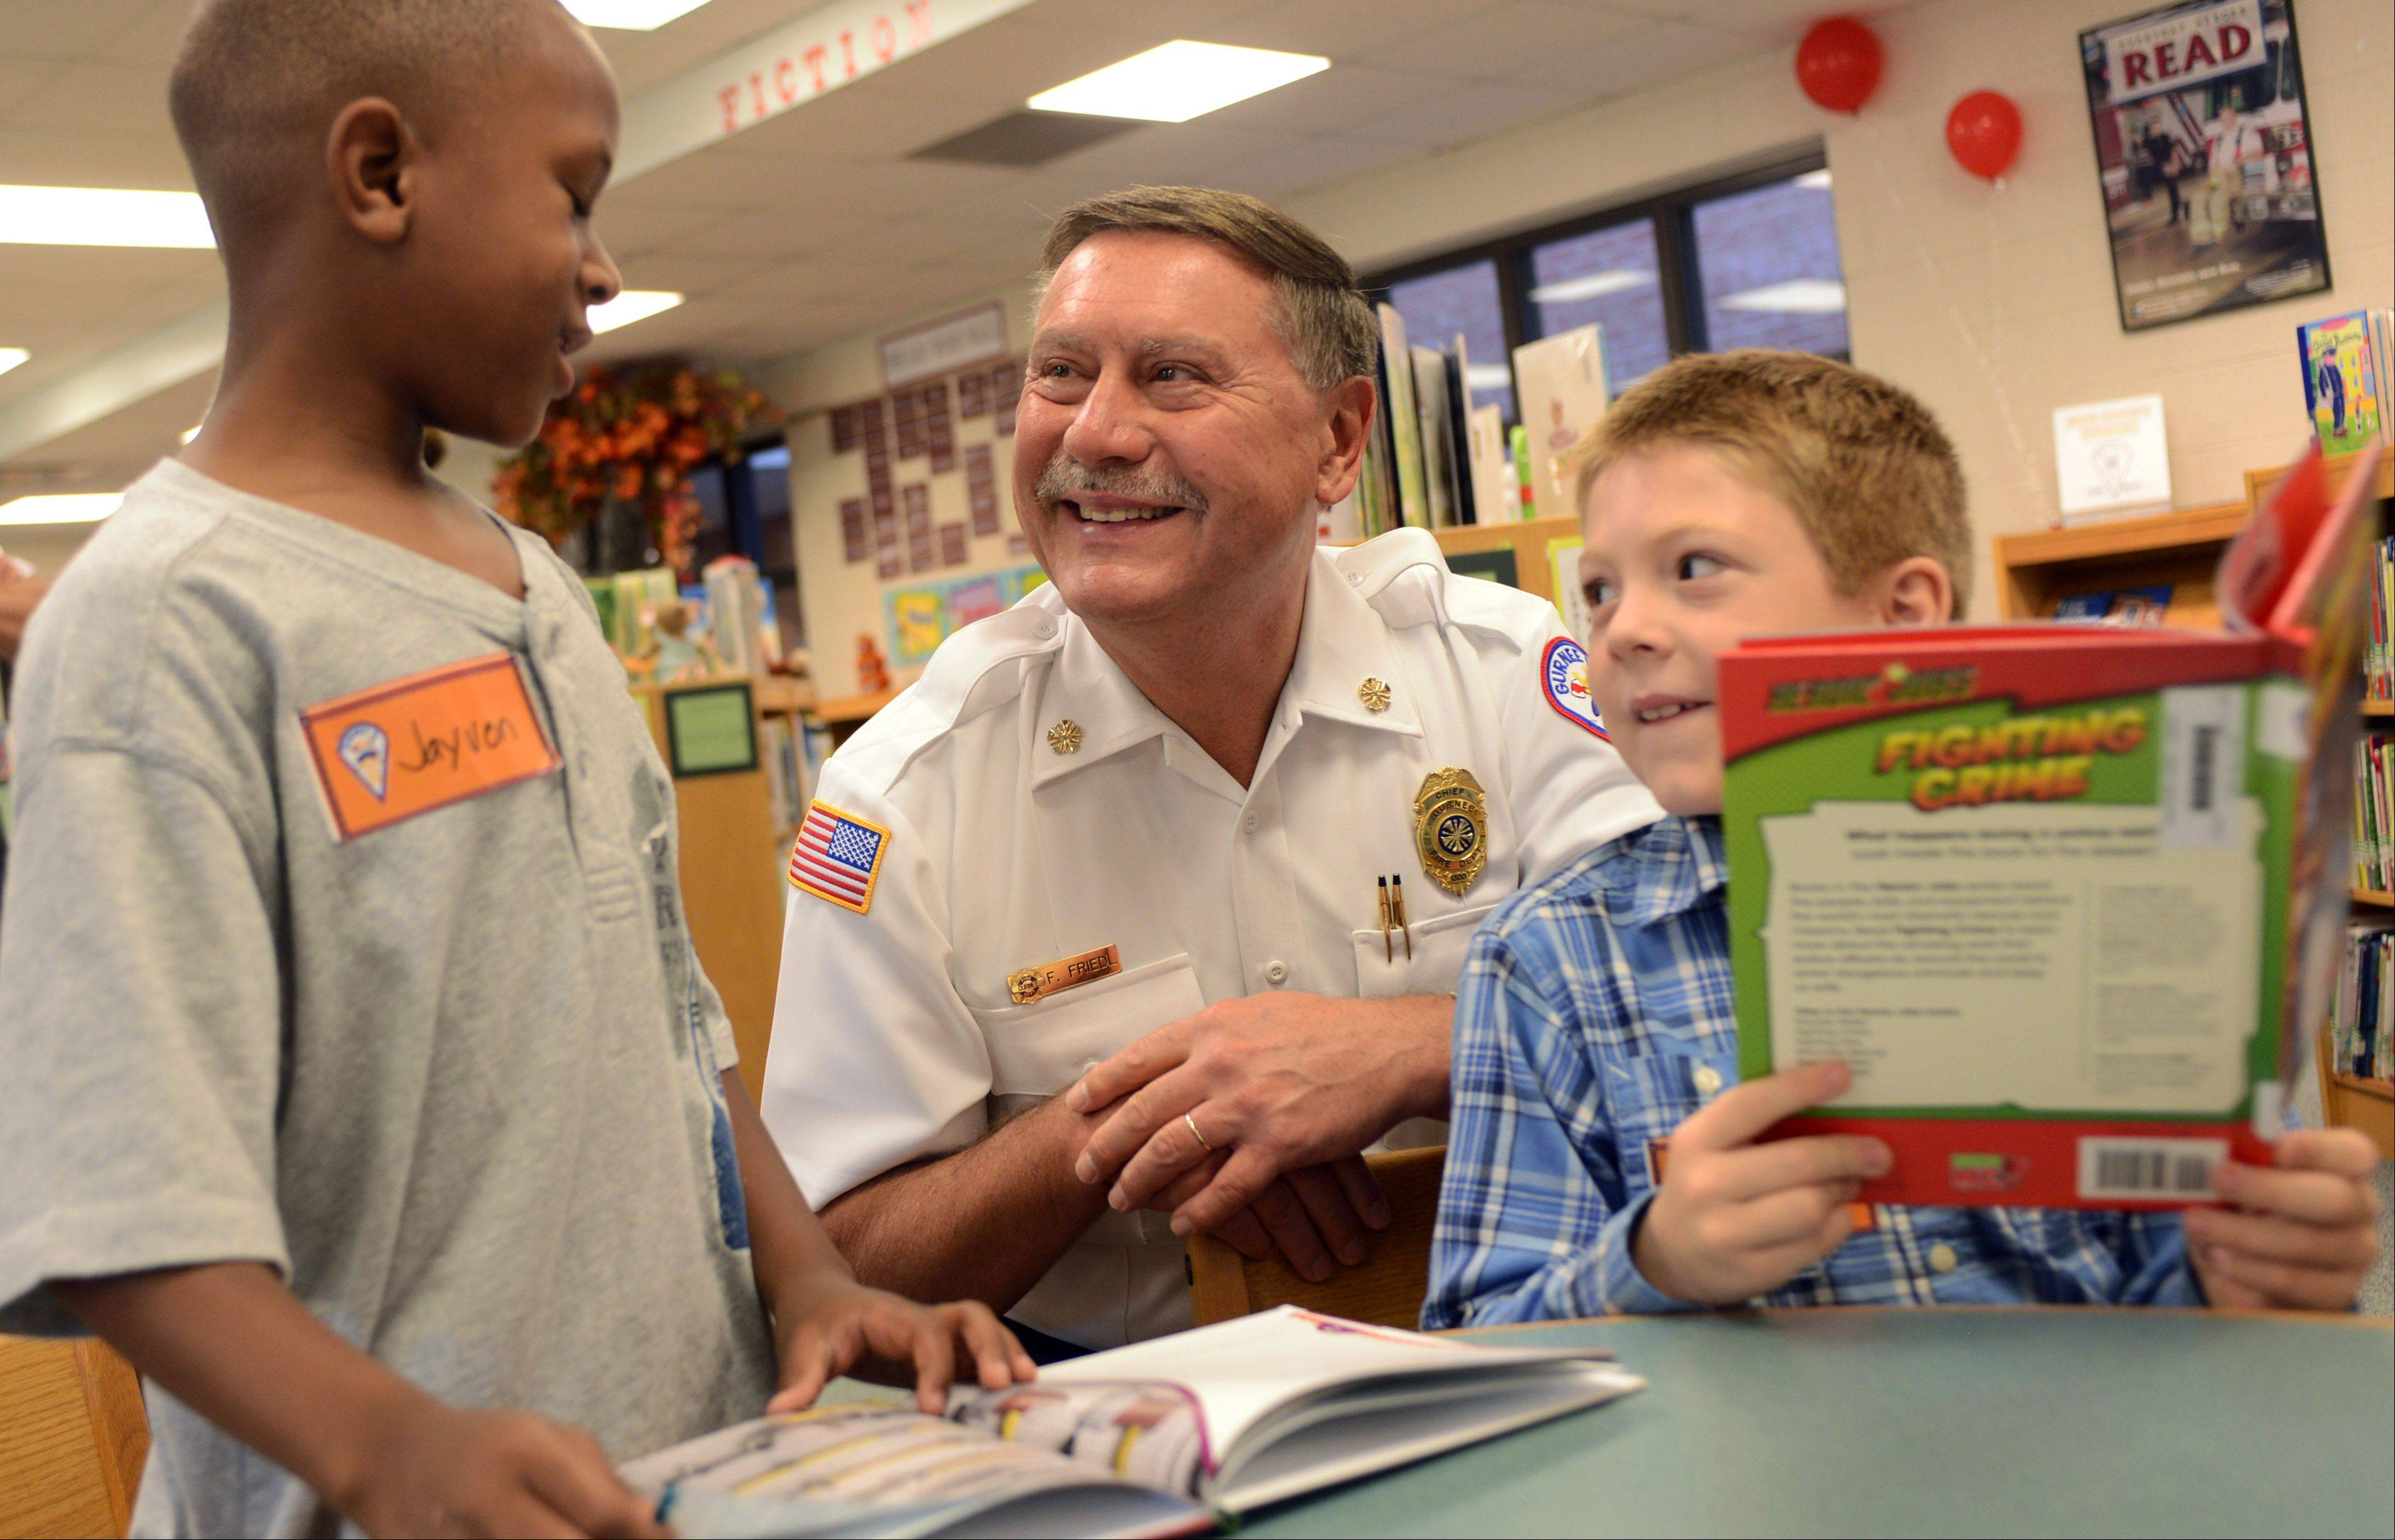 Gurnee Fire Chief Fred N. Friedl, center, looks over fire safety books with Spaulding Elementary School second grade students Jayvon Scott, left, and Cole Harmon ON Wednesday in Gurnee. Thirteen libraries served by the fire department received books and DVDs through a grant received by the department.